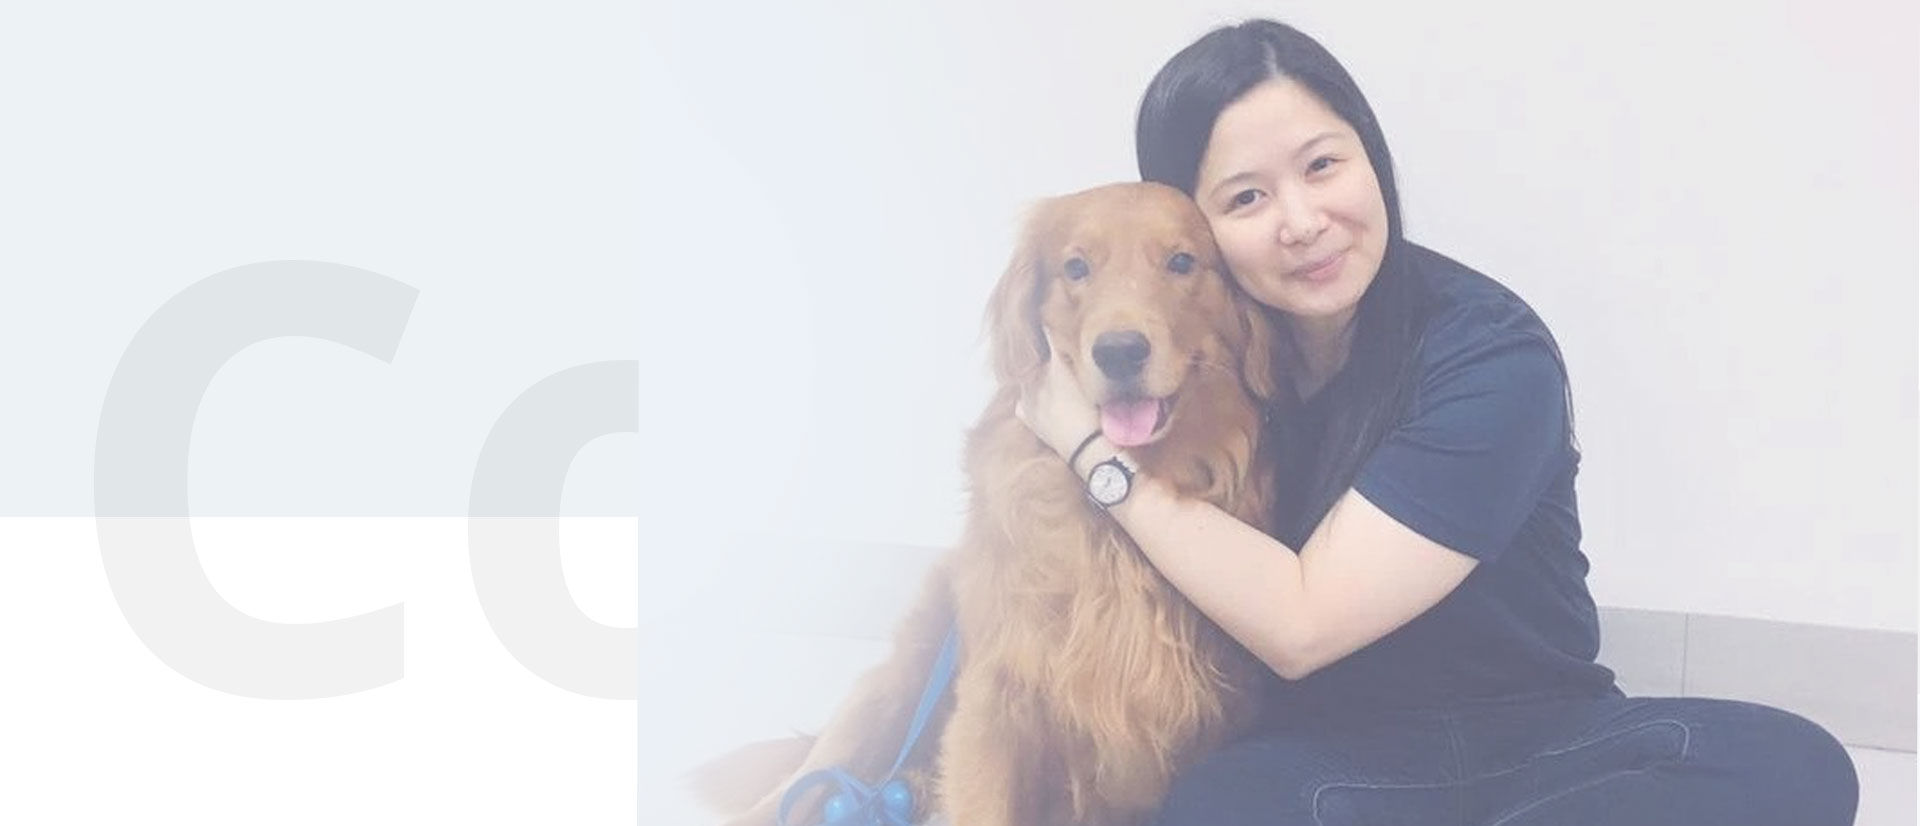 Our certified Human-Animal Teams conduct Animal-Assisted Activities with our Therapy Animals